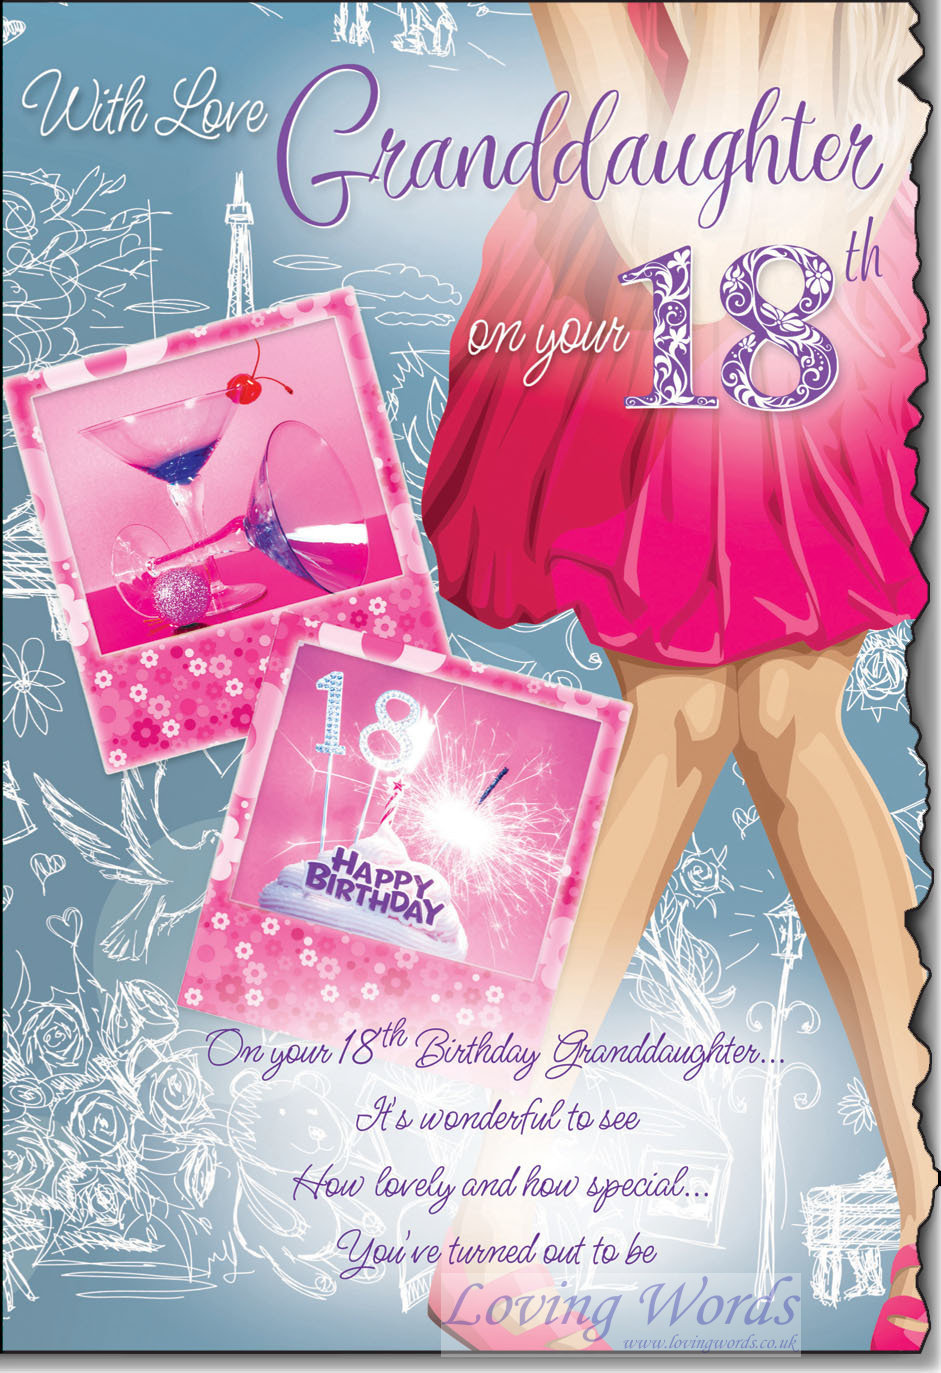 Granddaughter 18th greeting cards by loving words personalised greeting cards kristyandbryce Choice Image